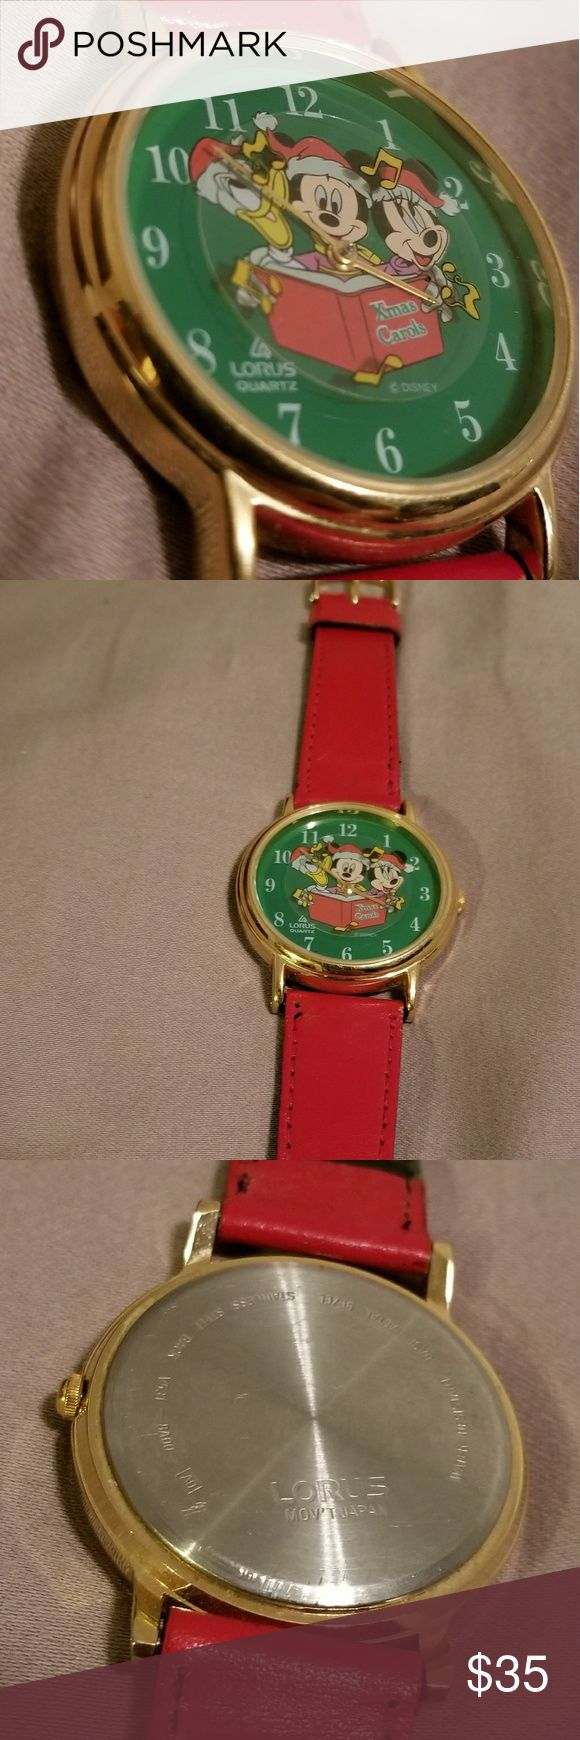 Mickey Mouse Watch Featuring a rare vintage Mickey Mouse watch by Lours. This beautiful watch depicts Mickey, Minnie, and Donald singing a Chistmas carol and features  rotating music notes. This watch is in amazing condtion for it age. It is used and has some wear in the inside of the band which is shown in the last two pictures but the outside of the band is immaculate. Holidays are right around the corner, get into the spirit with this beautiful watch! Lorus Accessories Watches